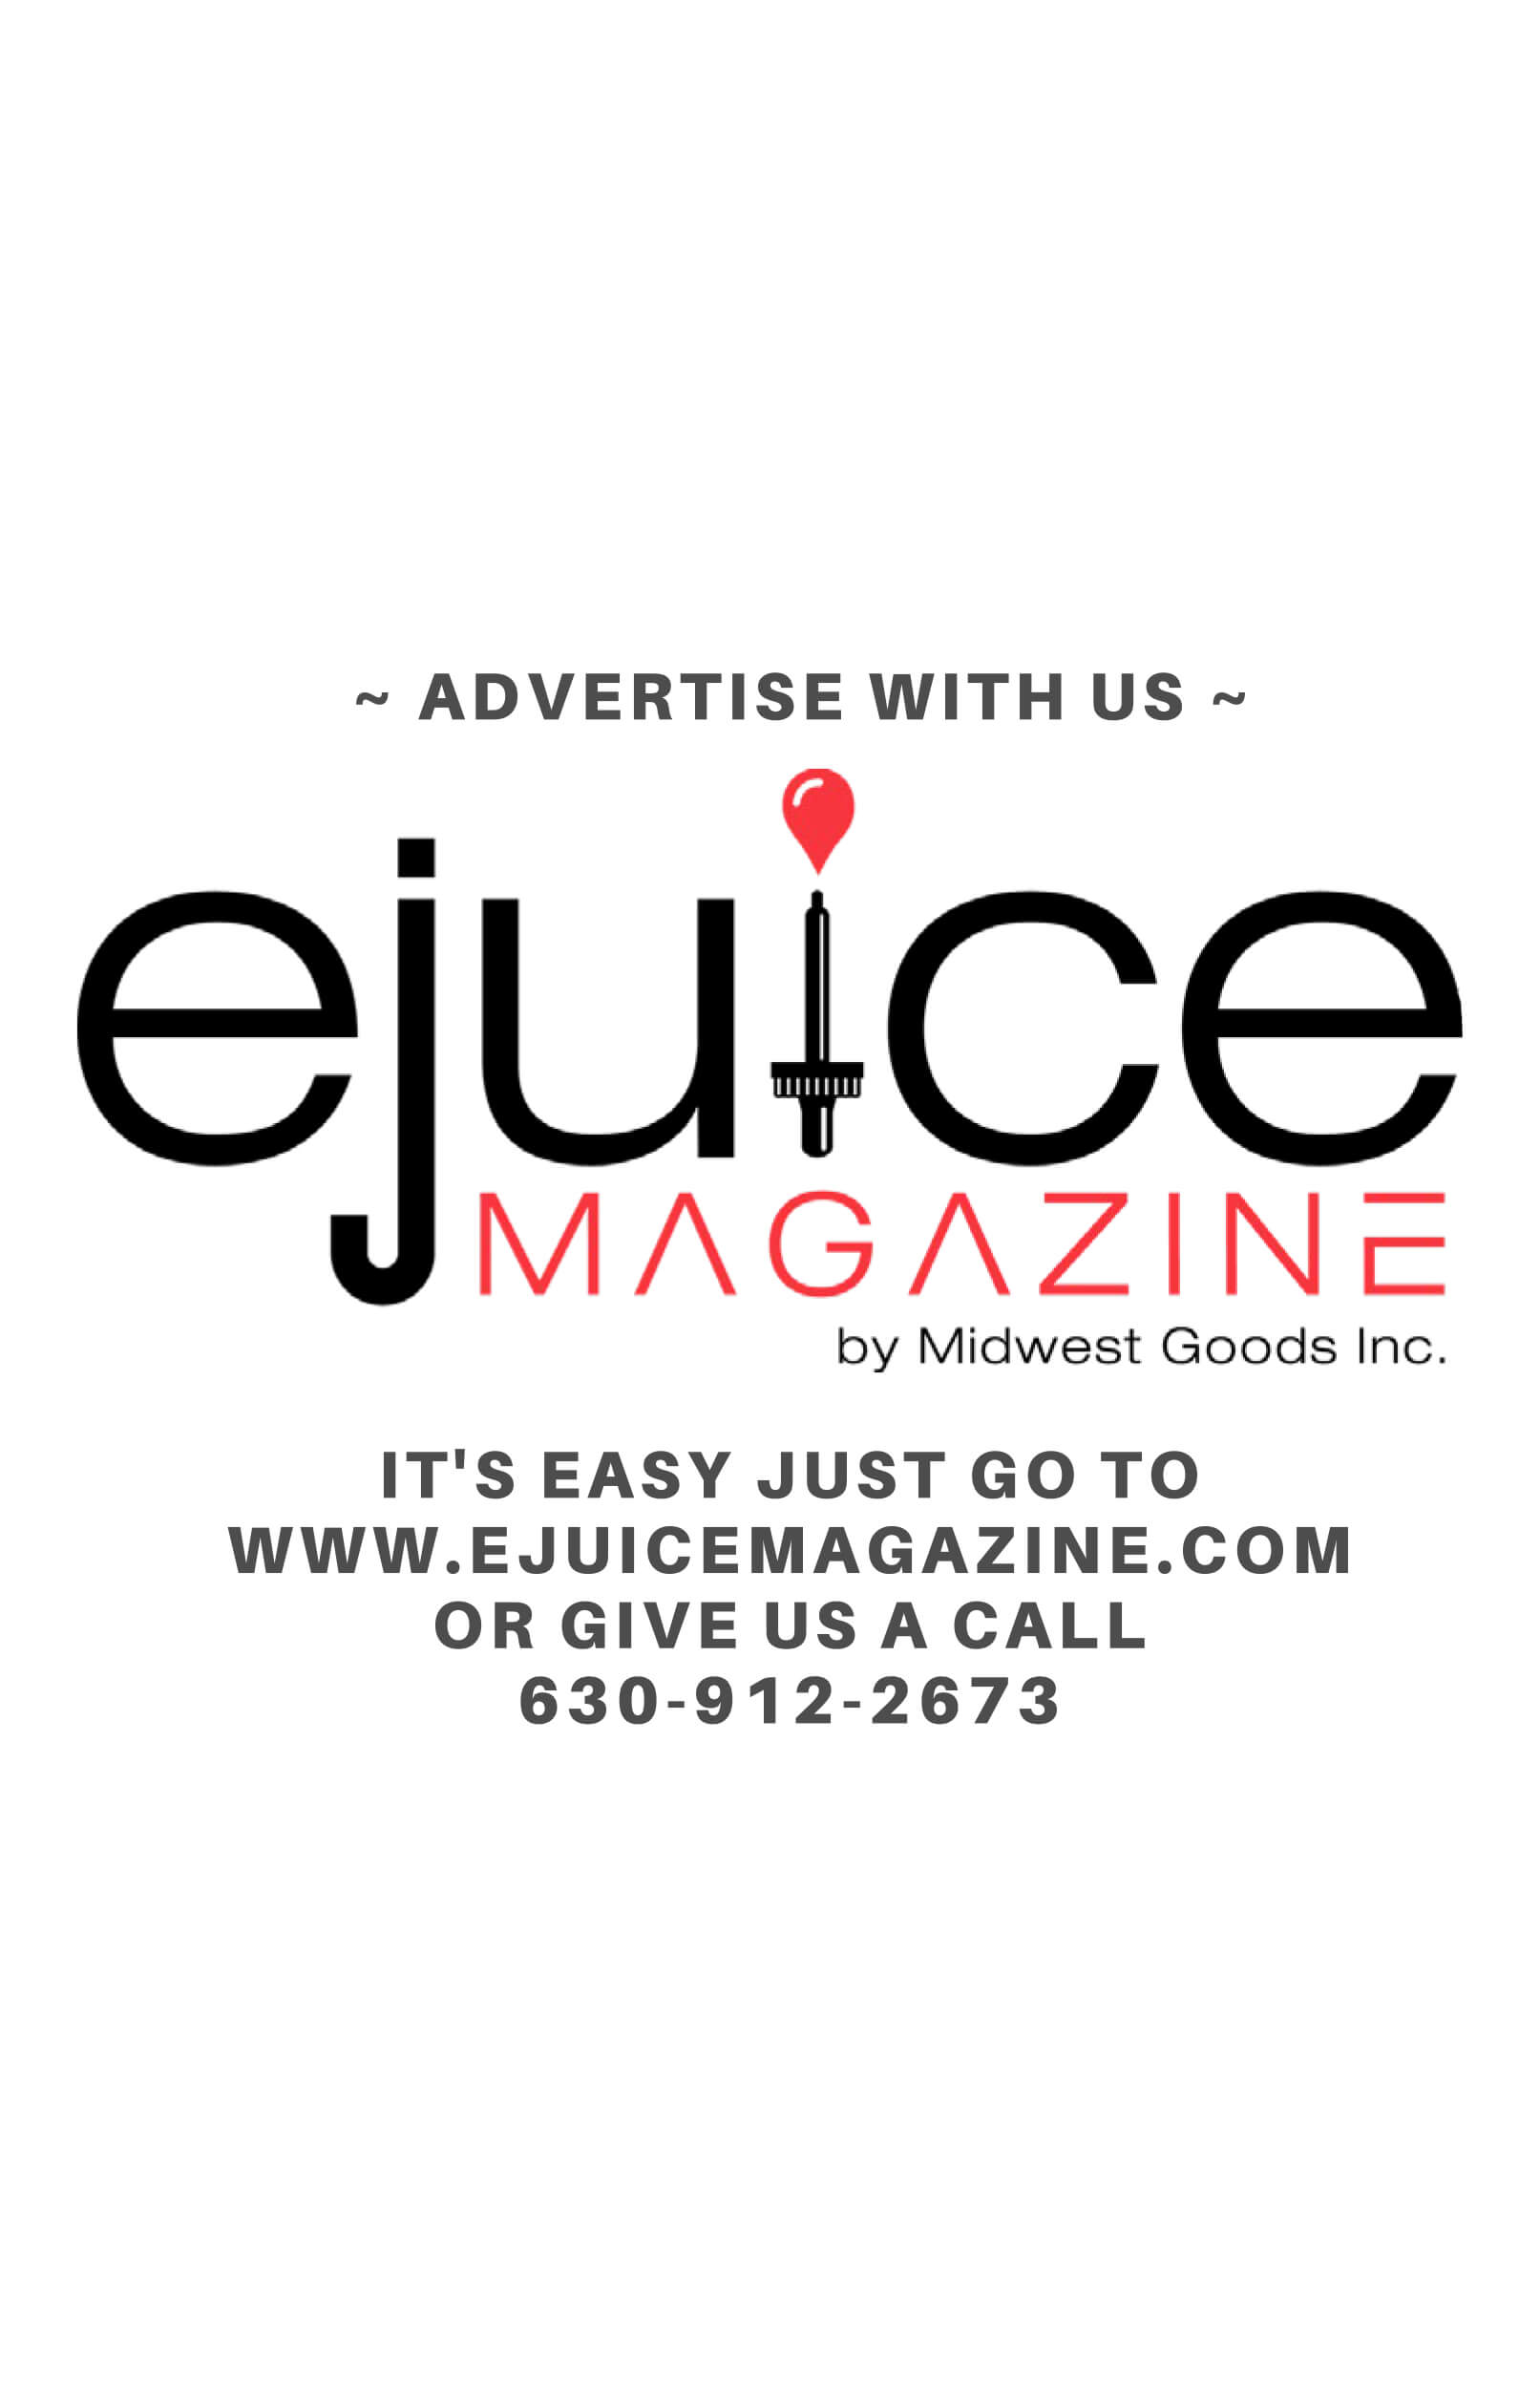 ejuice magazine advertise with us